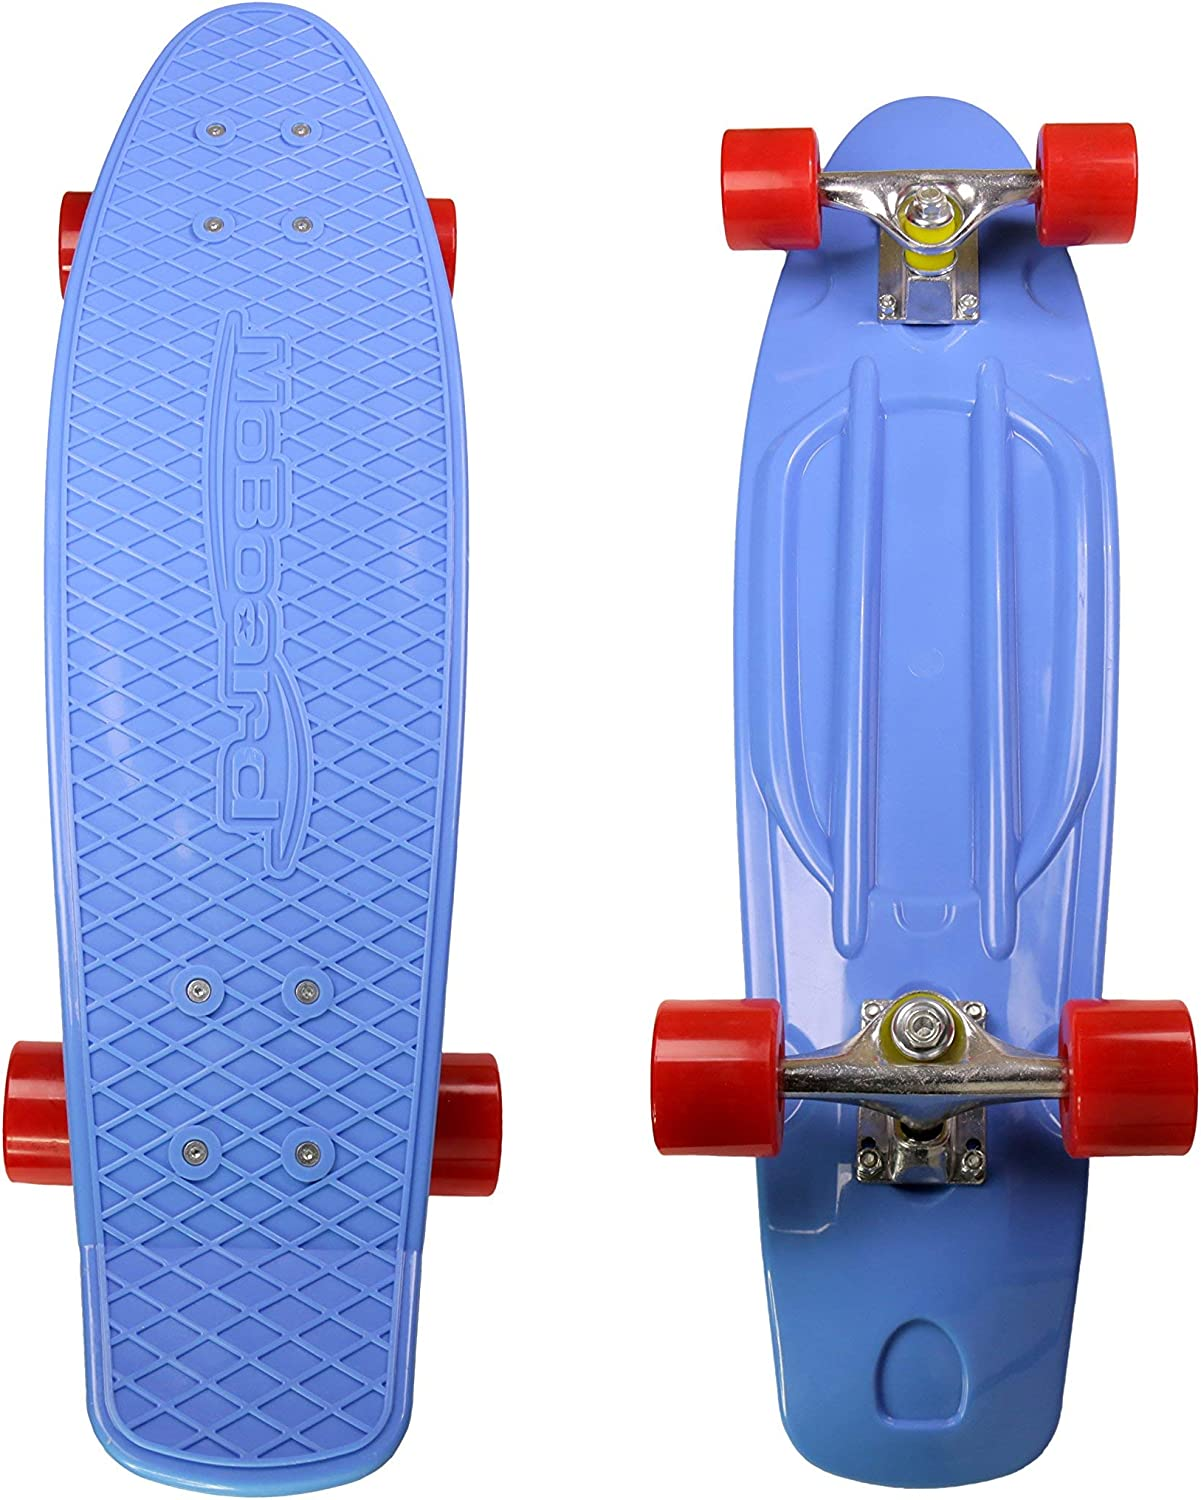 27-inch Vintage Skateboard - Skate and Professiona Beginners for Spring new work Ranking TOP19